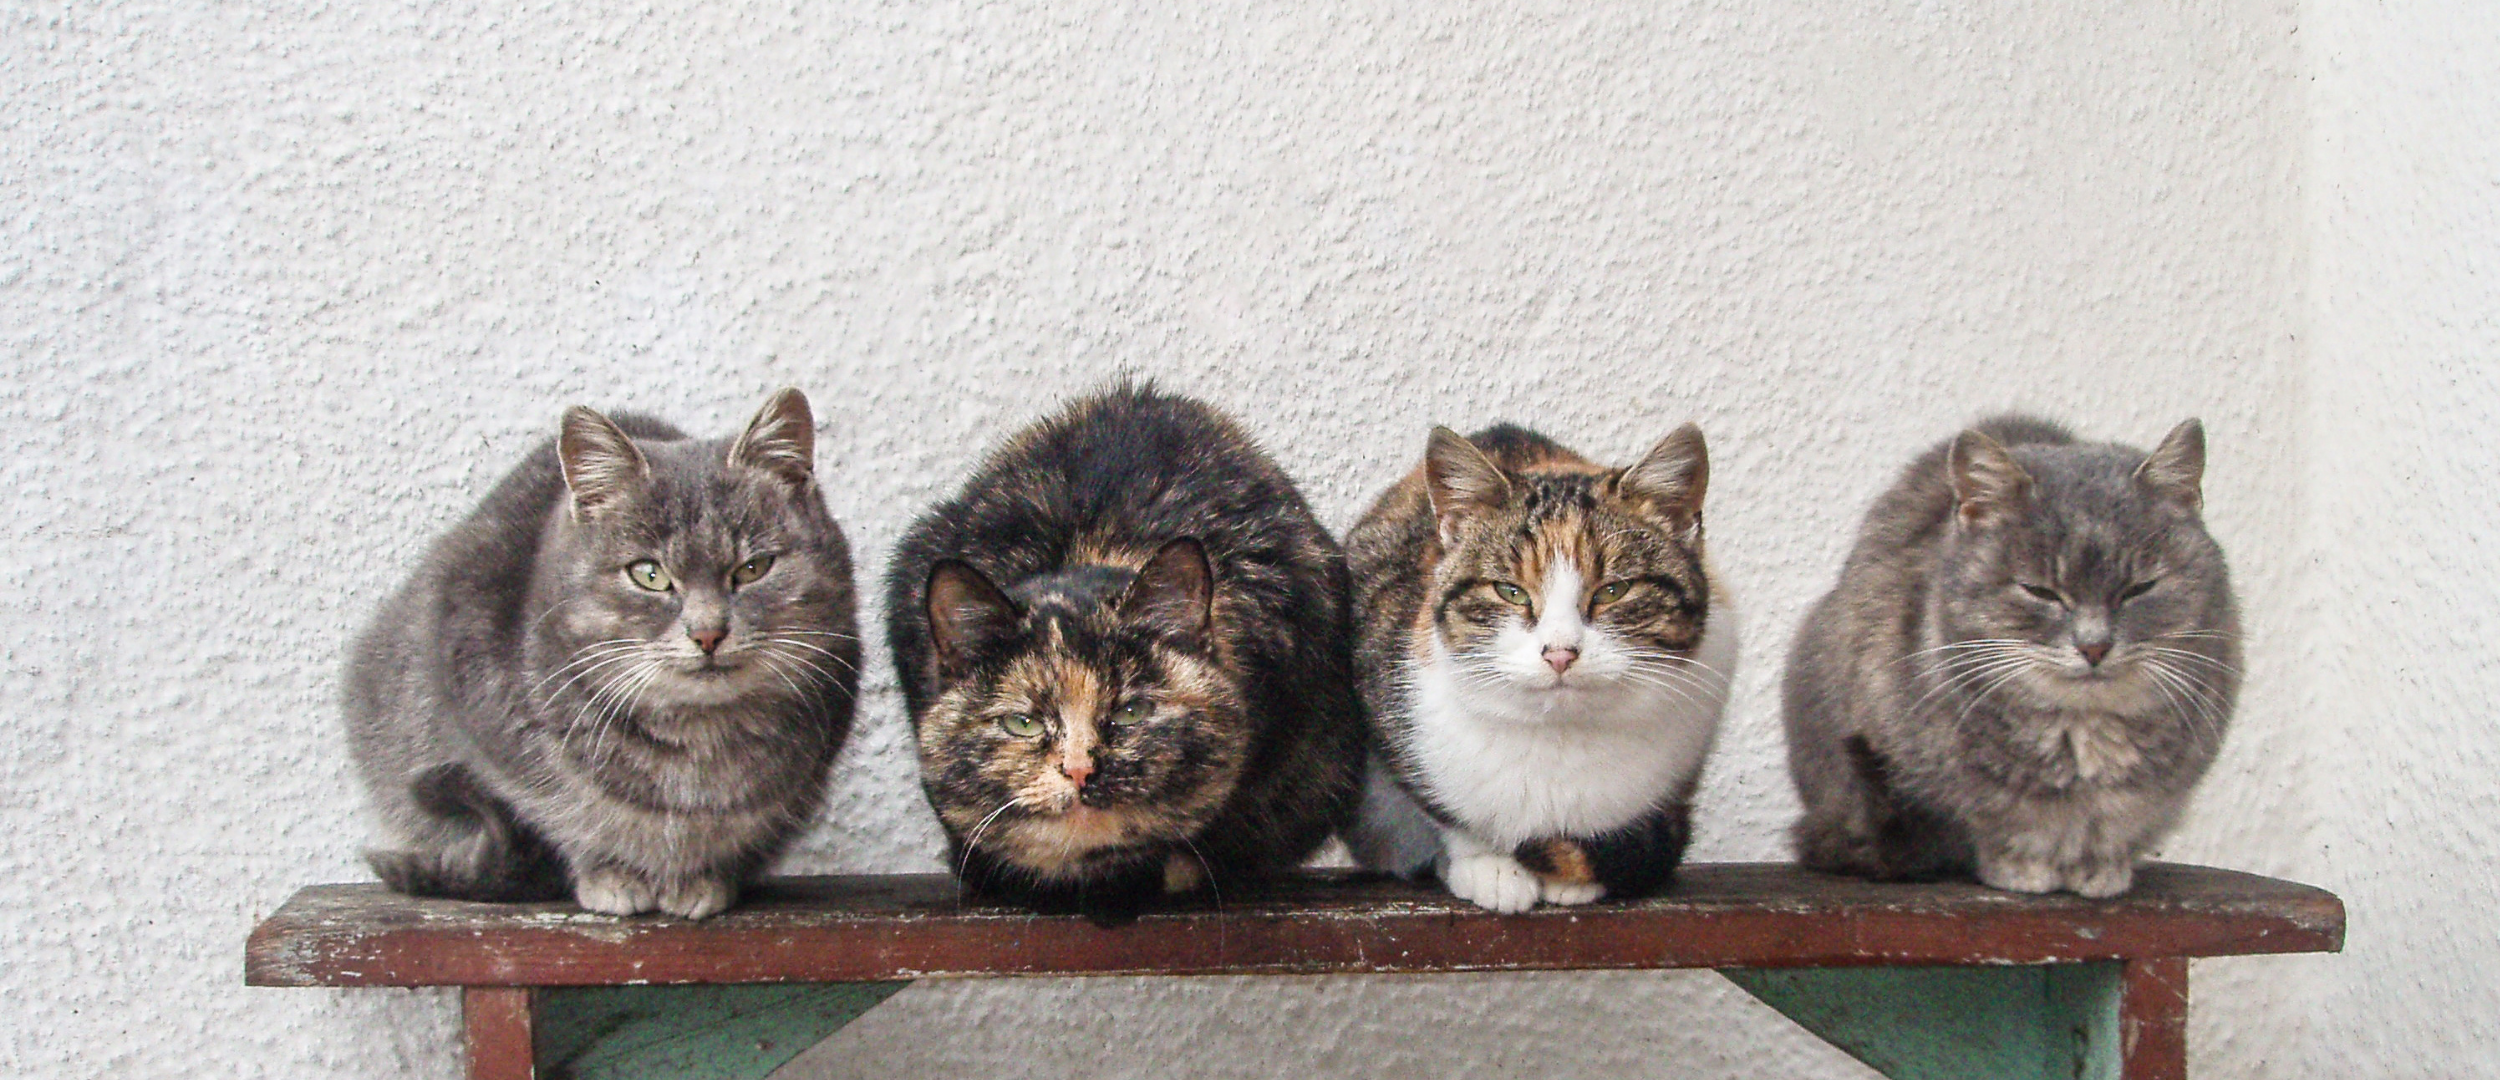 Four cats sitting side by side